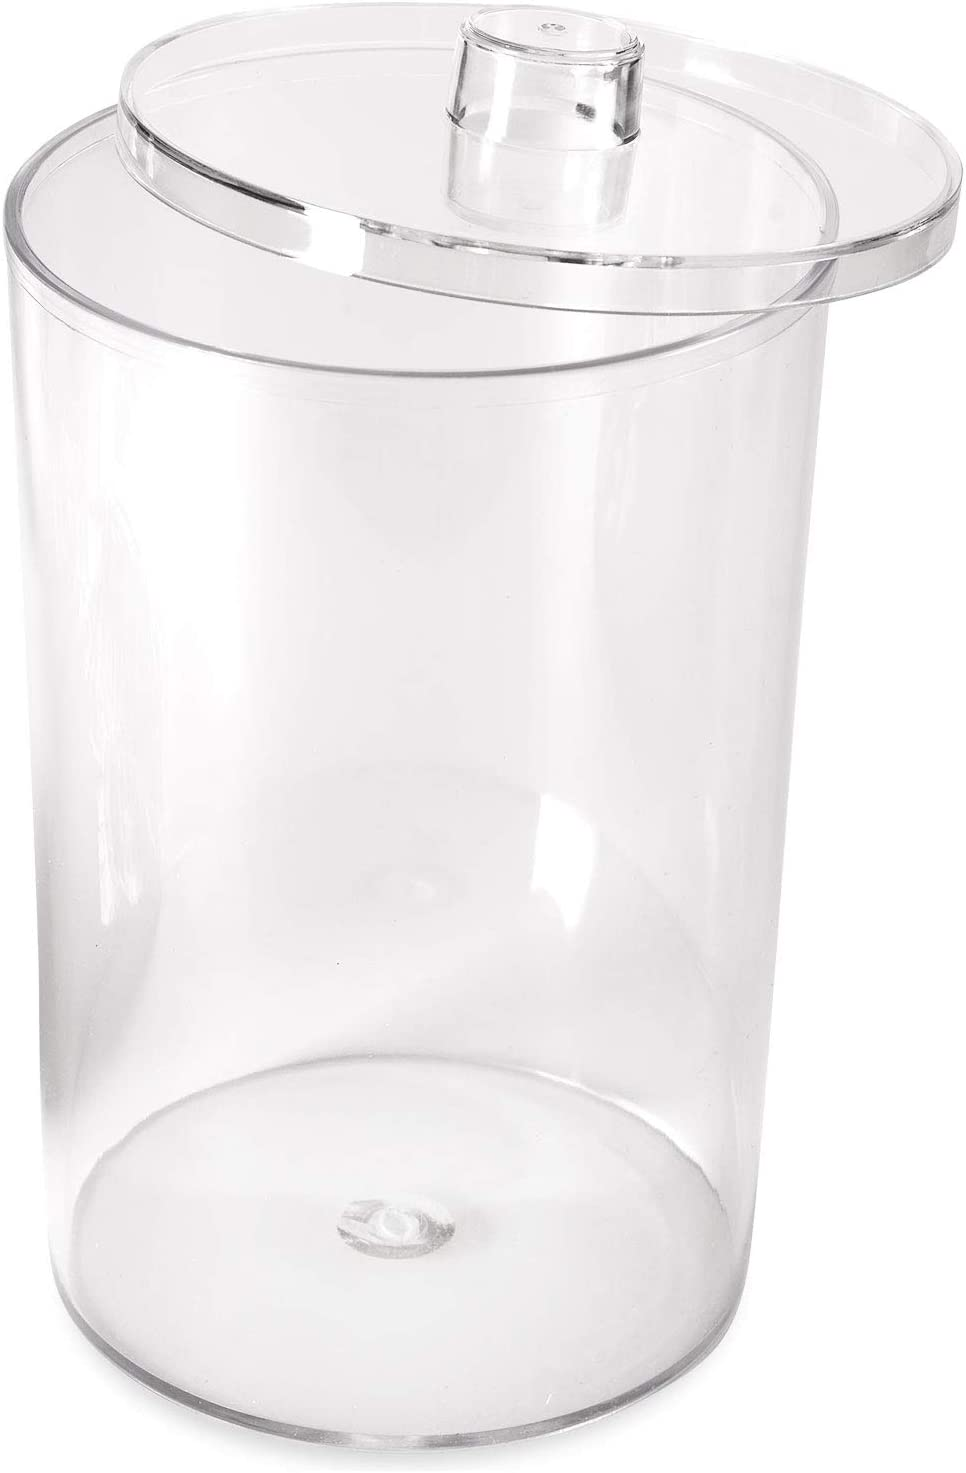 MABIS Decorative Storage Apothecary ClearJar for Kitchen, Bathroom or Laundry Organization withLid, 41 x 42 x 7 inches